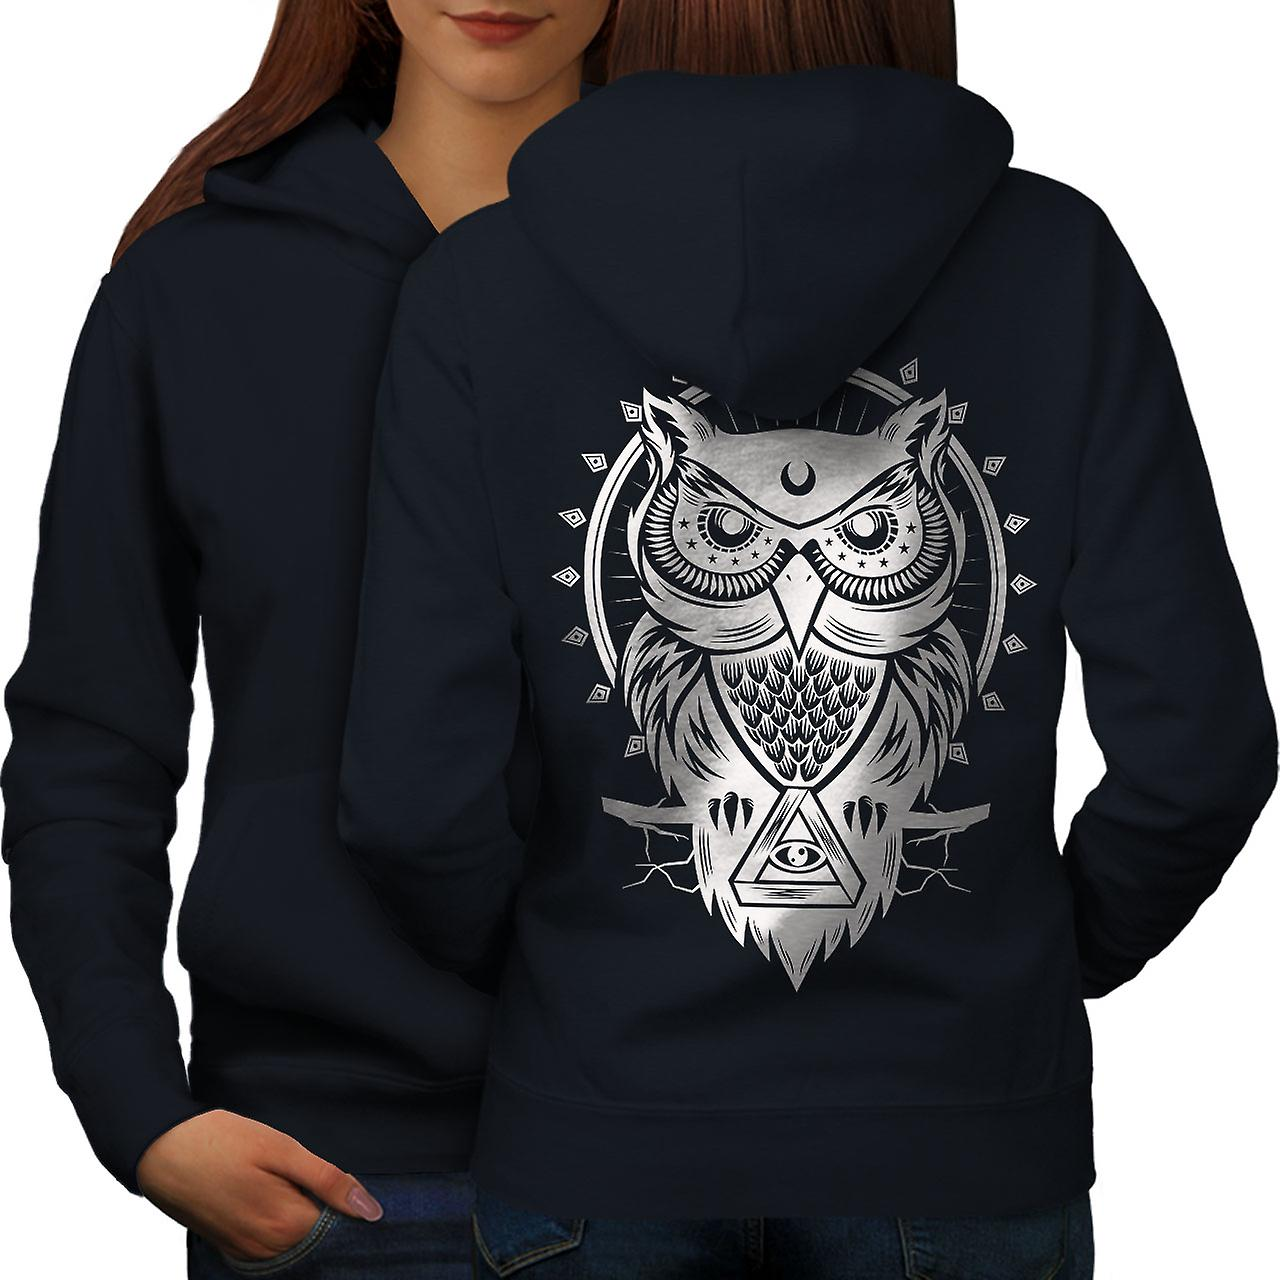 Chouette oeil animale femmes NavyHoodie dos